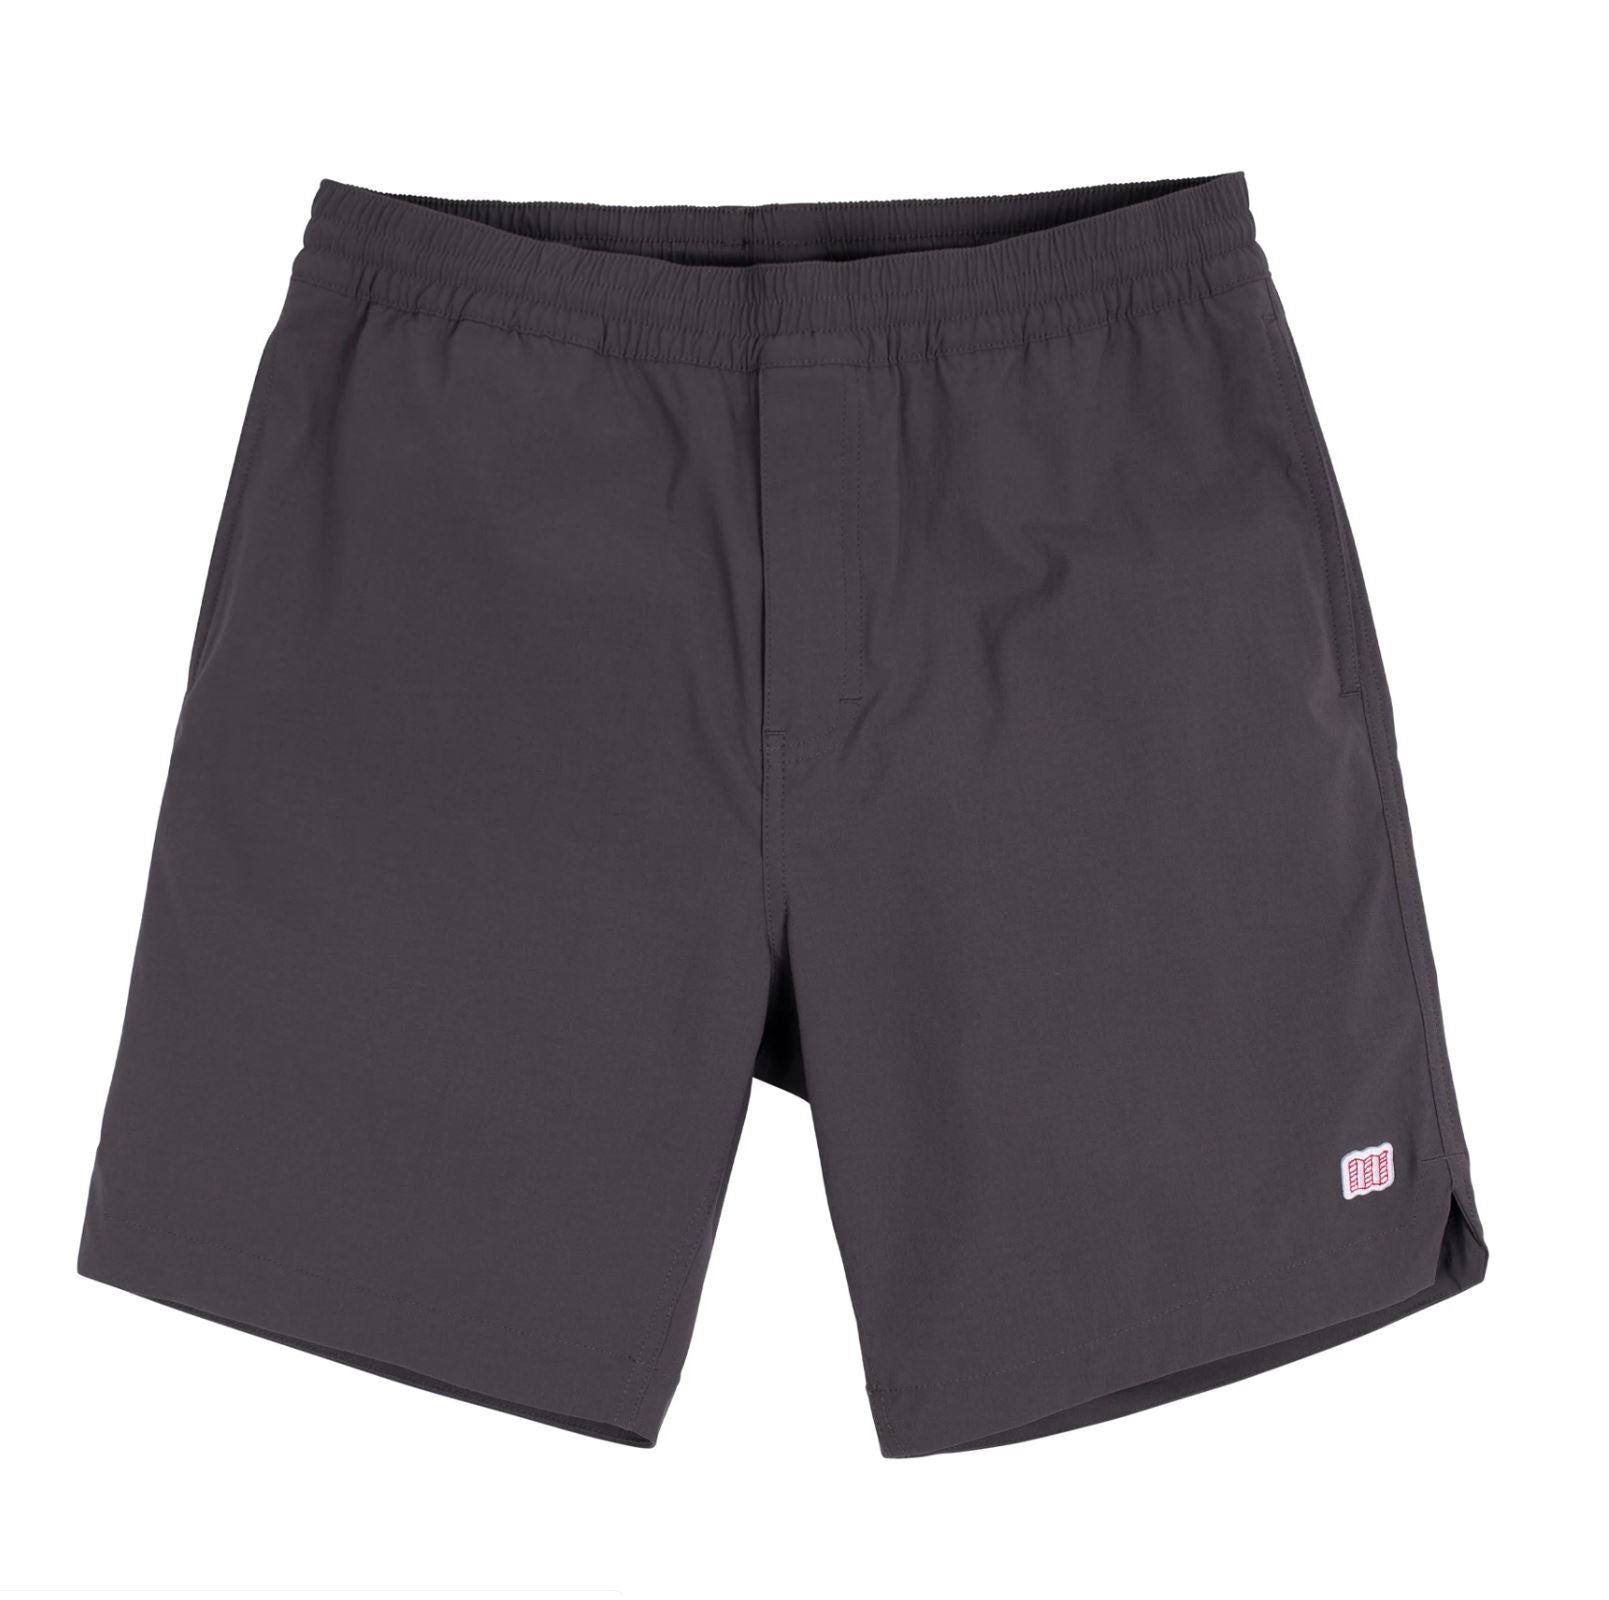 Topo Designs Global Shorts - Charcoal